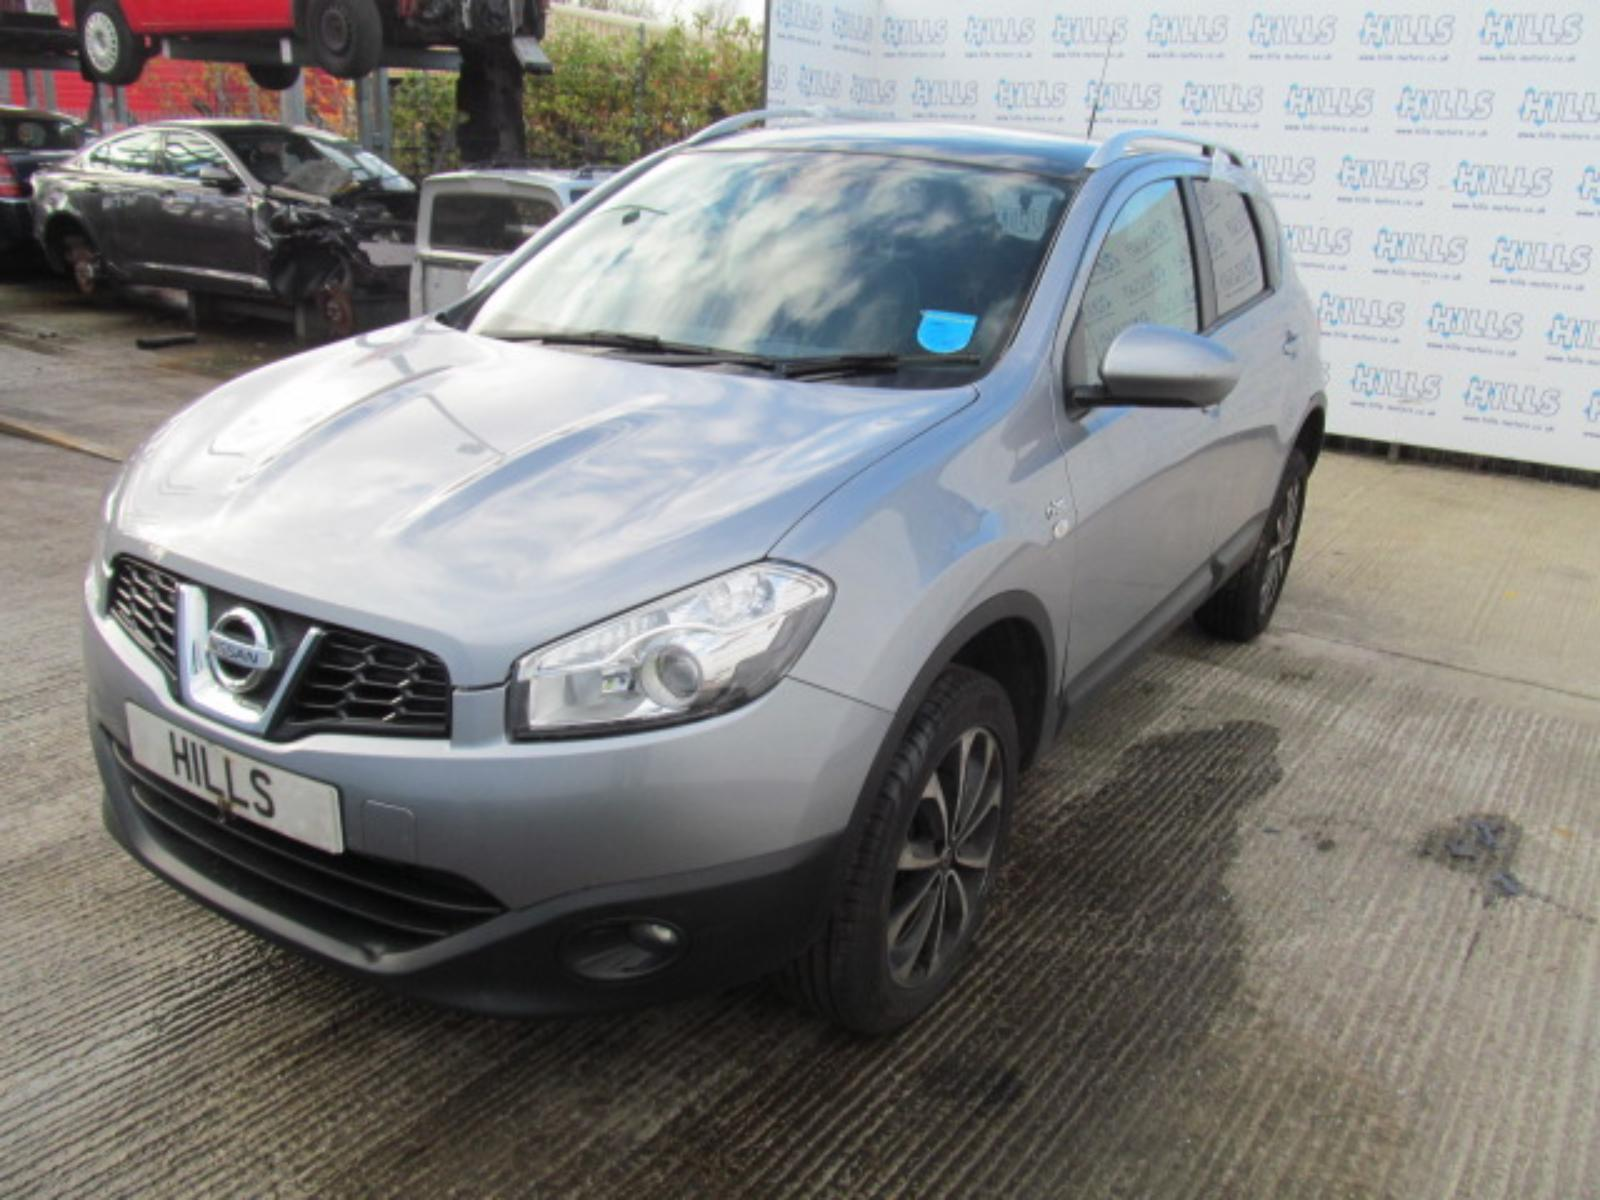 2011 nissan qashqai 1 5 diesel engine k9k eur 5 1010200q4t ebay. Black Bedroom Furniture Sets. Home Design Ideas